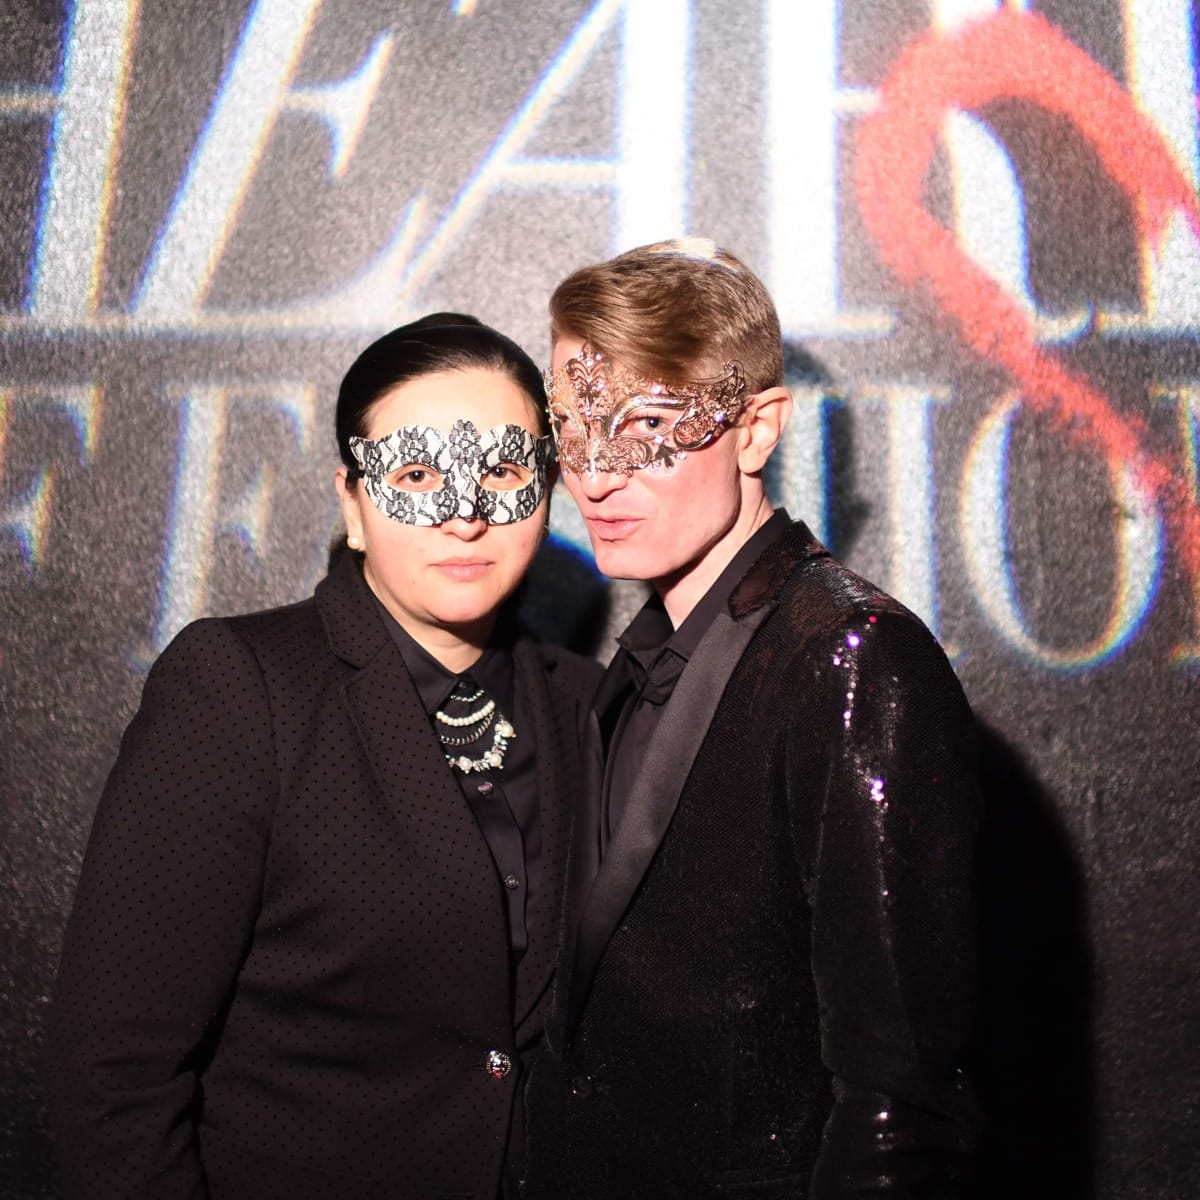 V Hernandez and James Napier at Heart of Fashion Masquerade Ball